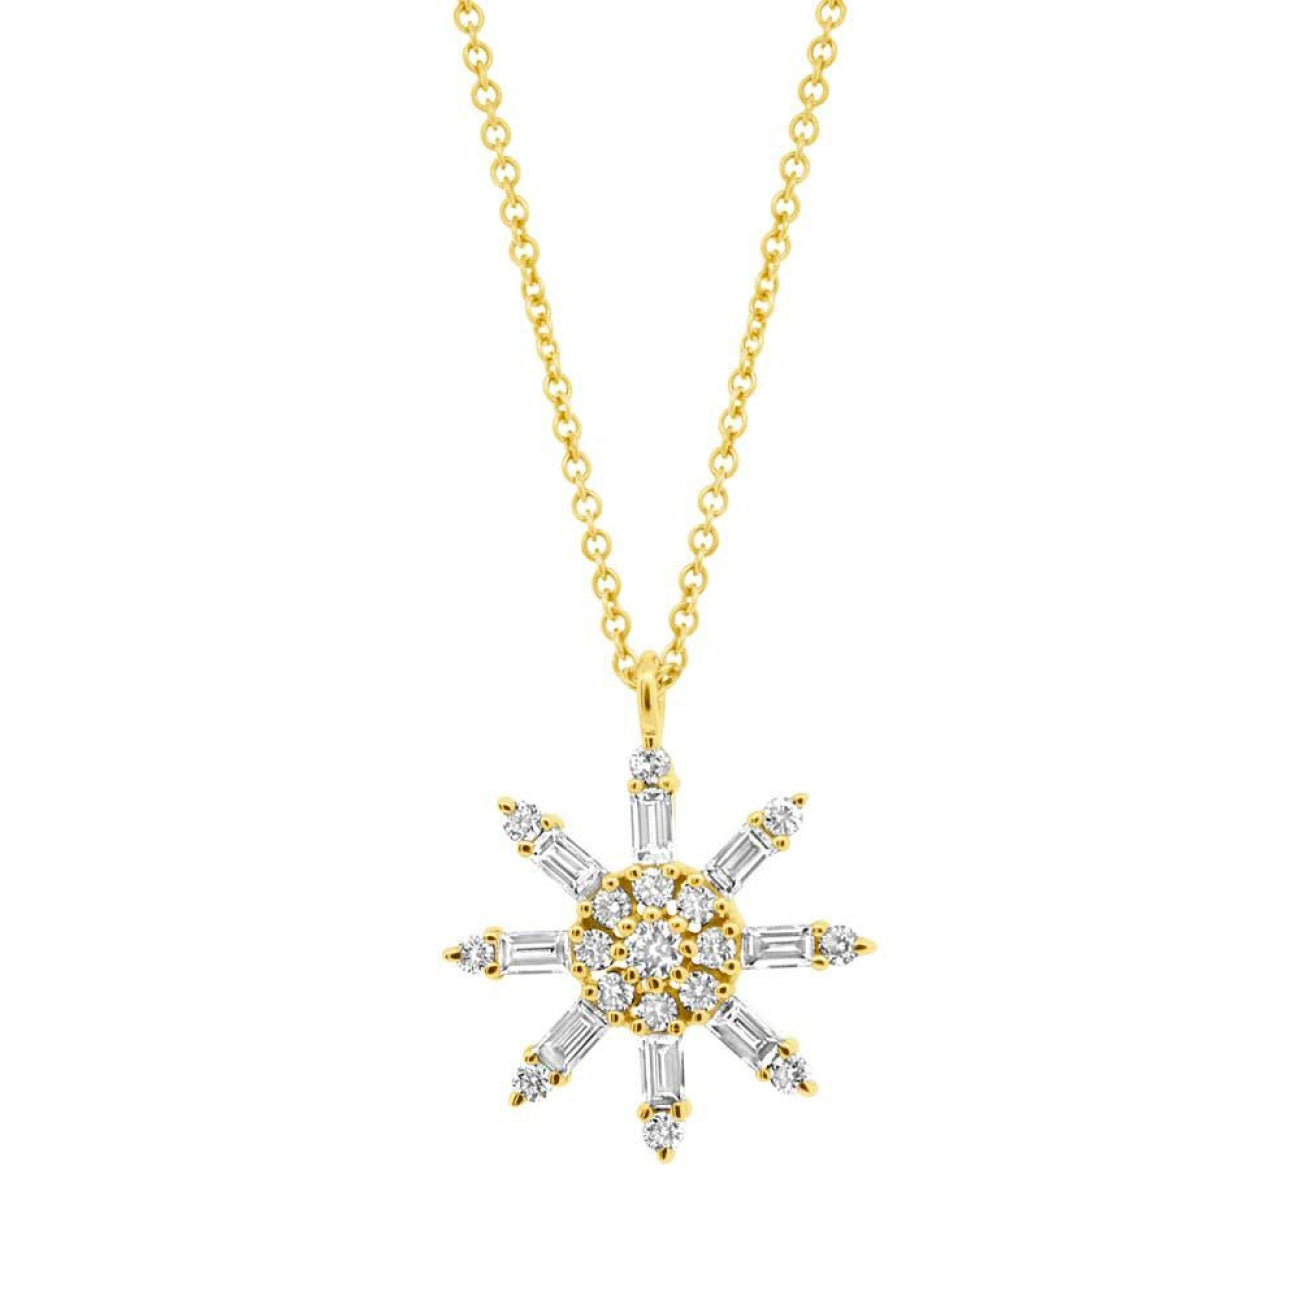 Shy Creation Jewelry - 14k Yellow Gold Diamond Baguette Necklace | Manfredi Jewels